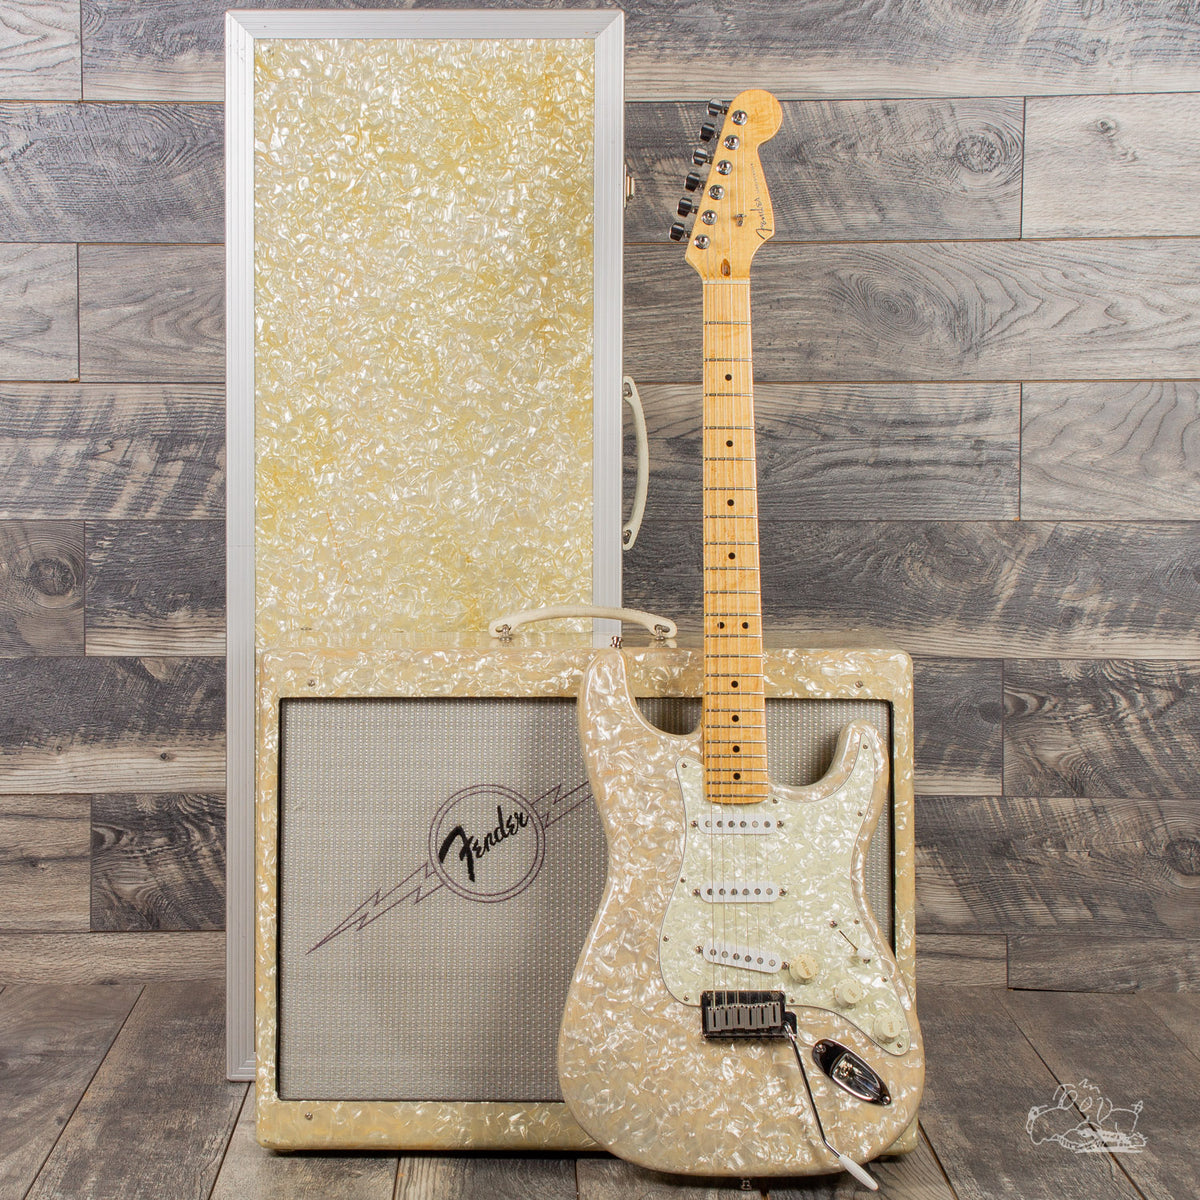 1995 Fender Custom Shop Moto Stratocaster and Blues Deluxe Set - #32 of 250